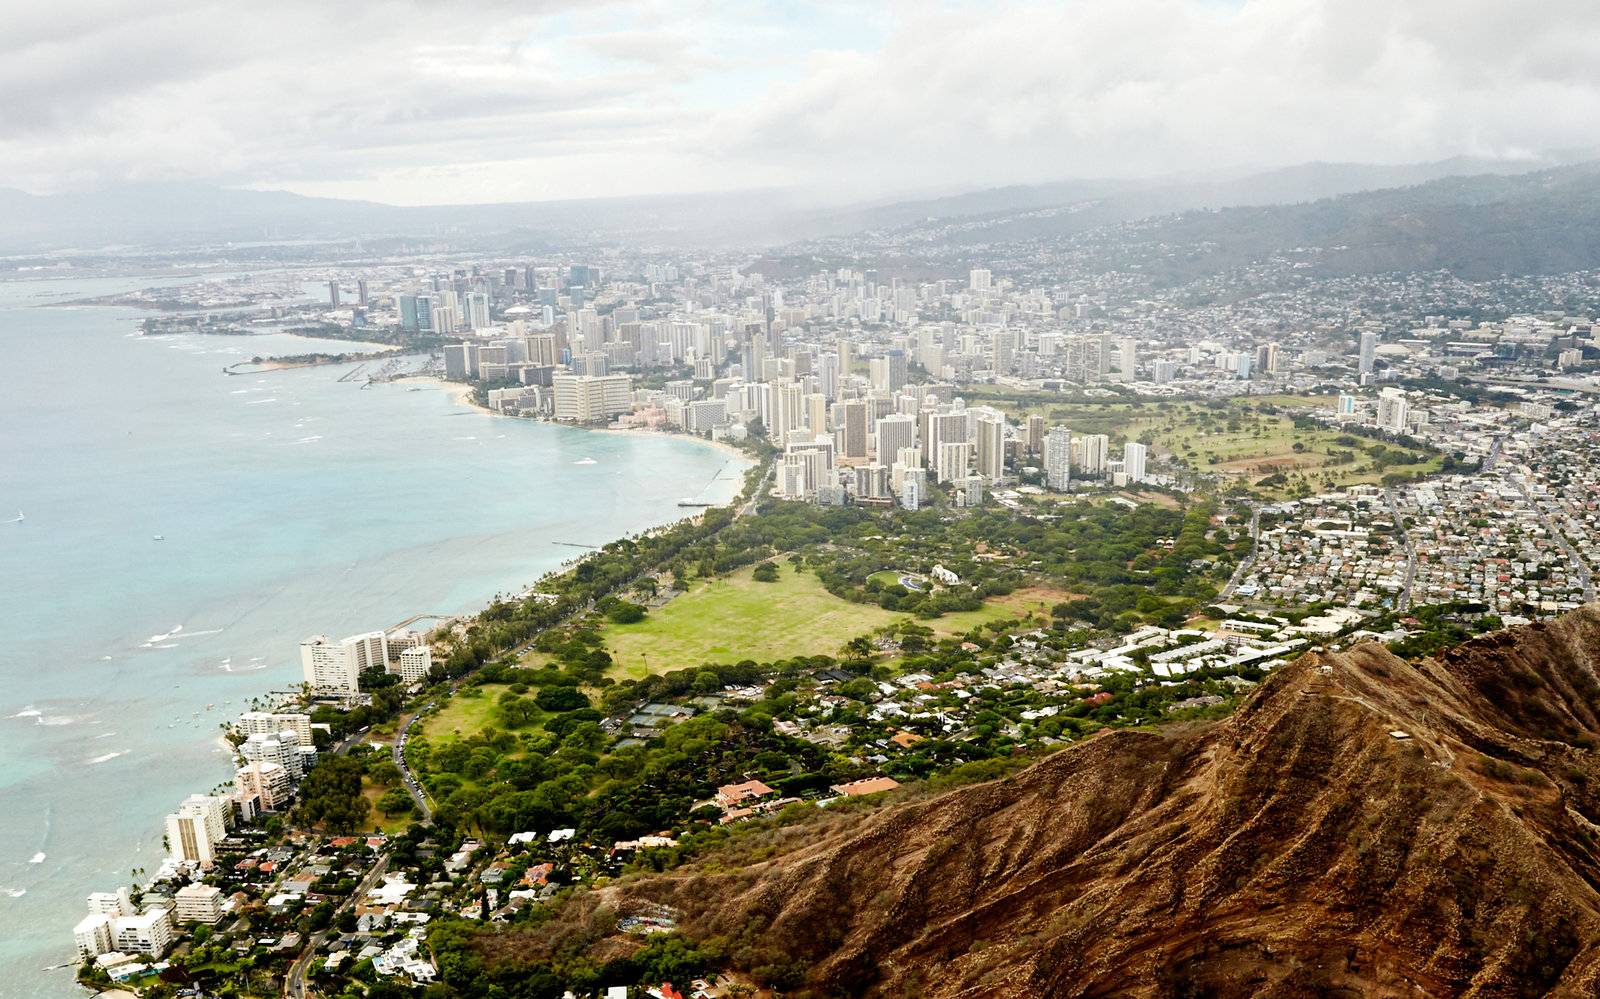 7. Honolulu, Hawaii